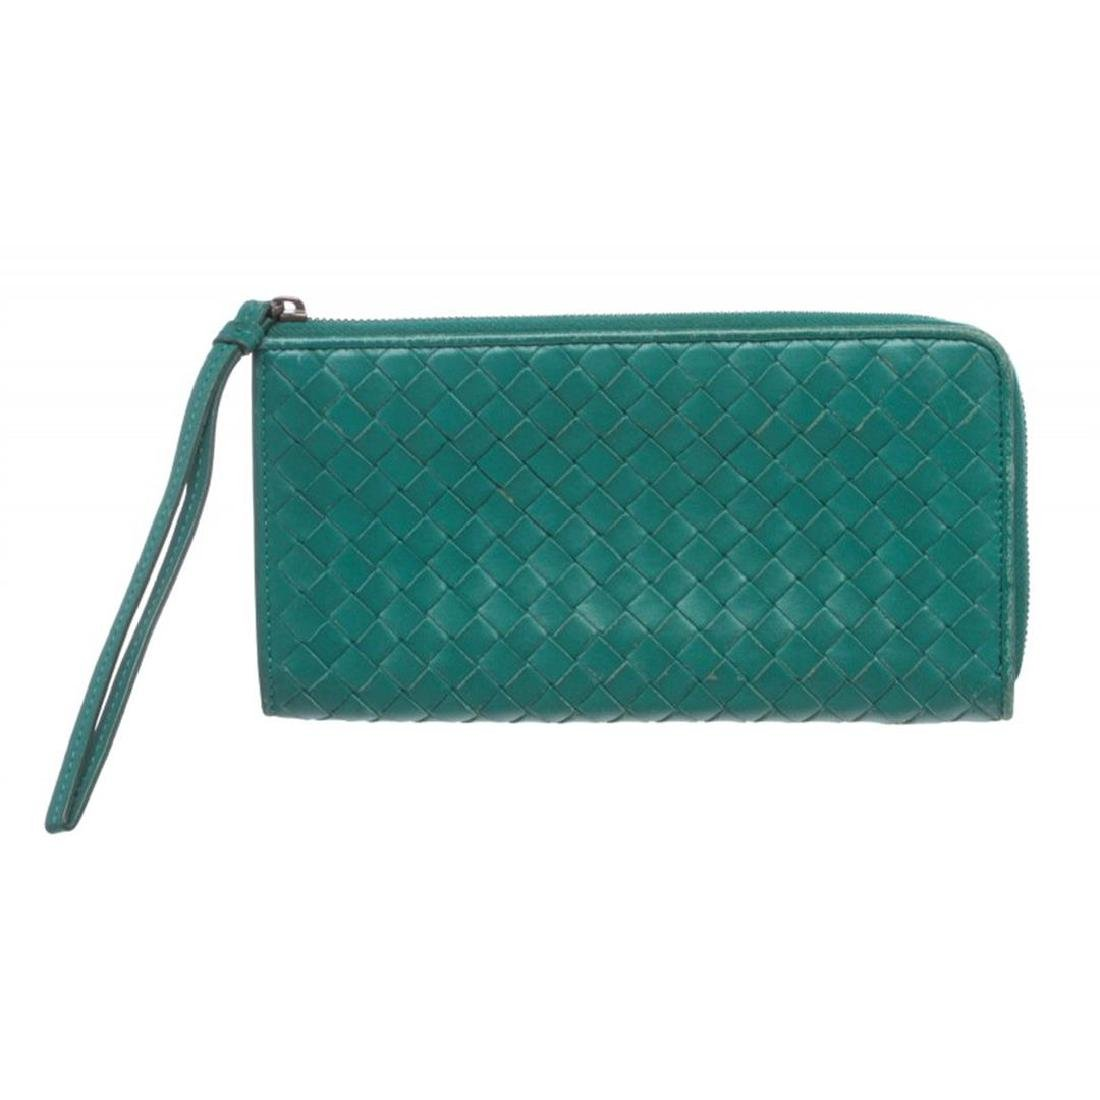 Bottega Veneta Green Woven Leather Zip Long Wallet